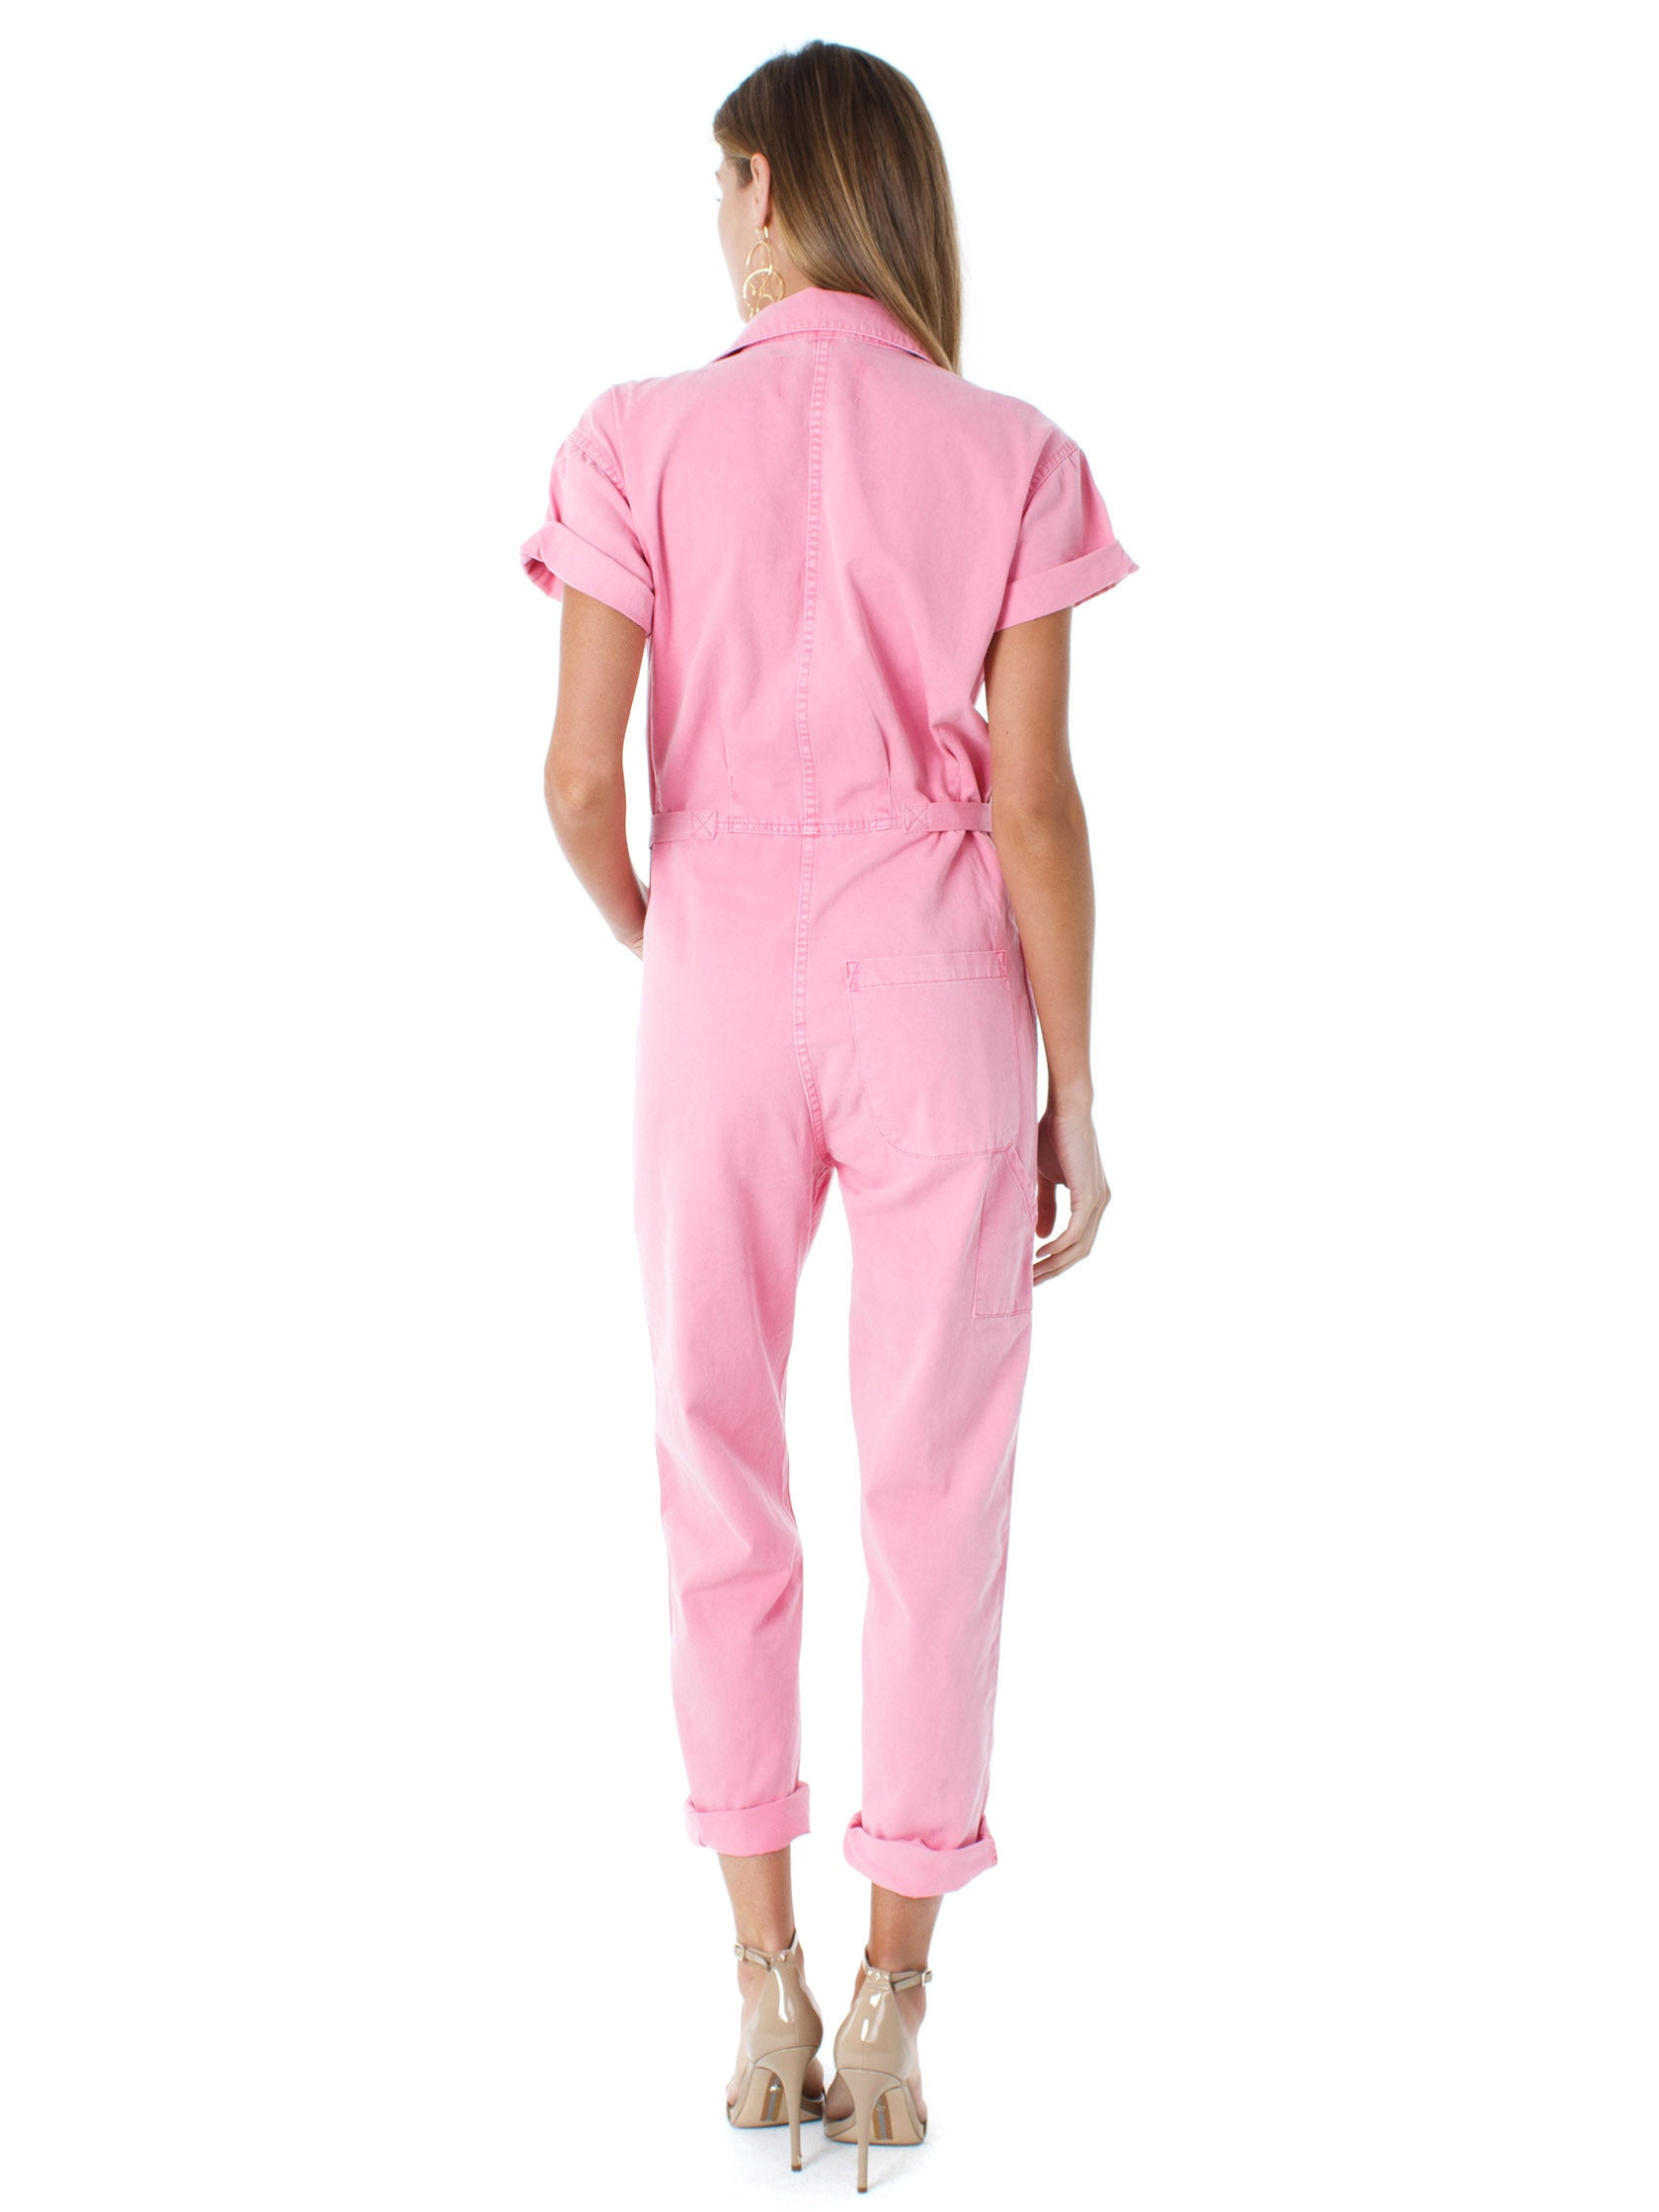 Women wearing a jumpsuit rental from PISTOLA called Grover Short Sleeve Field Suit